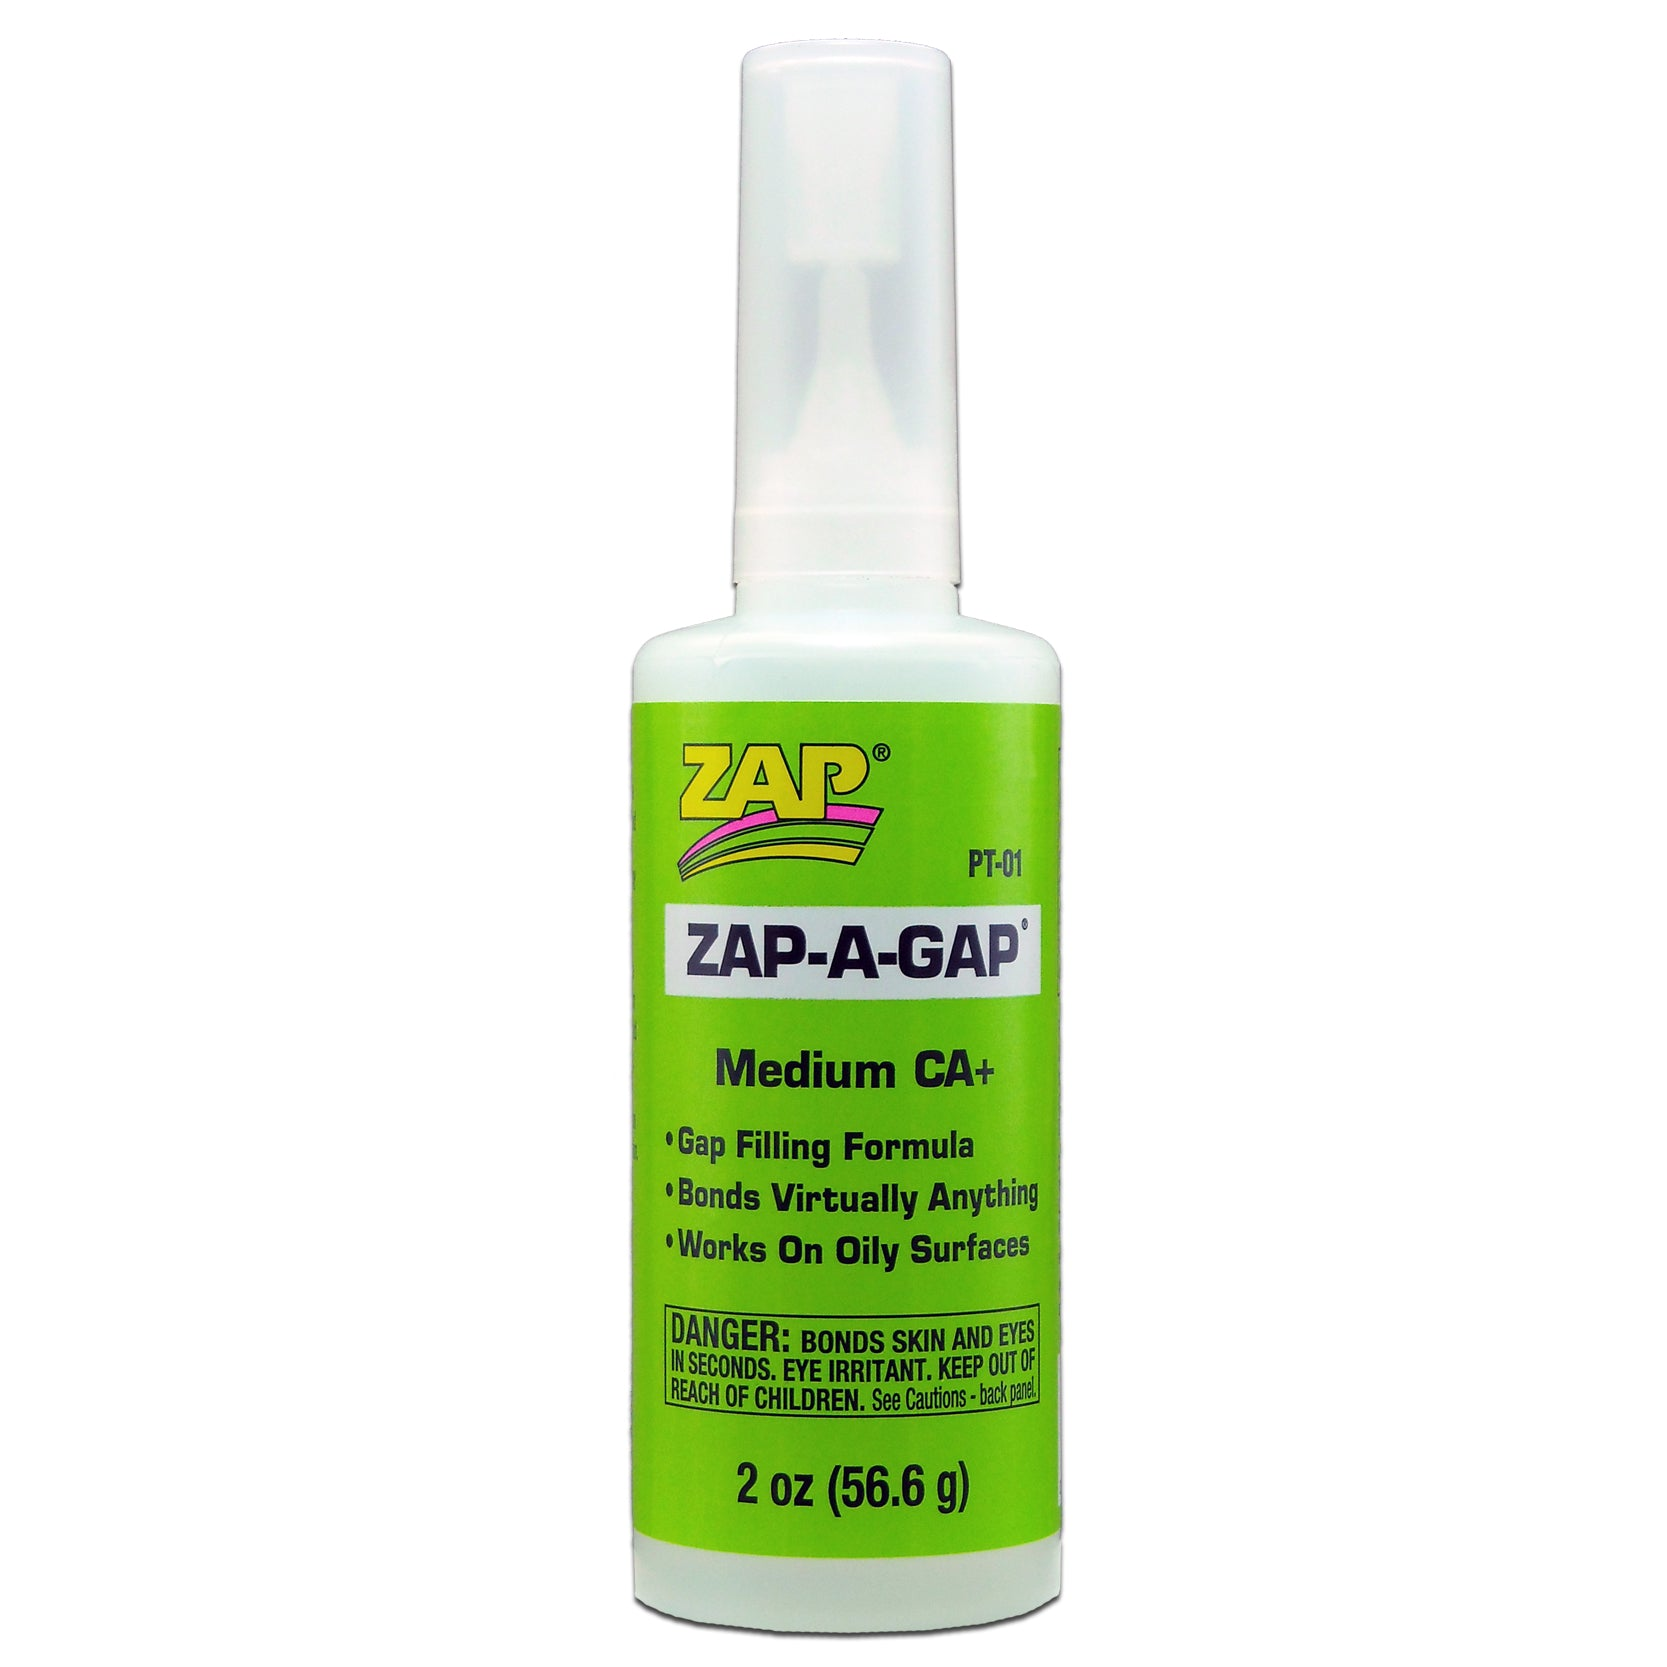 Zap a Gap CA+ (Medium)